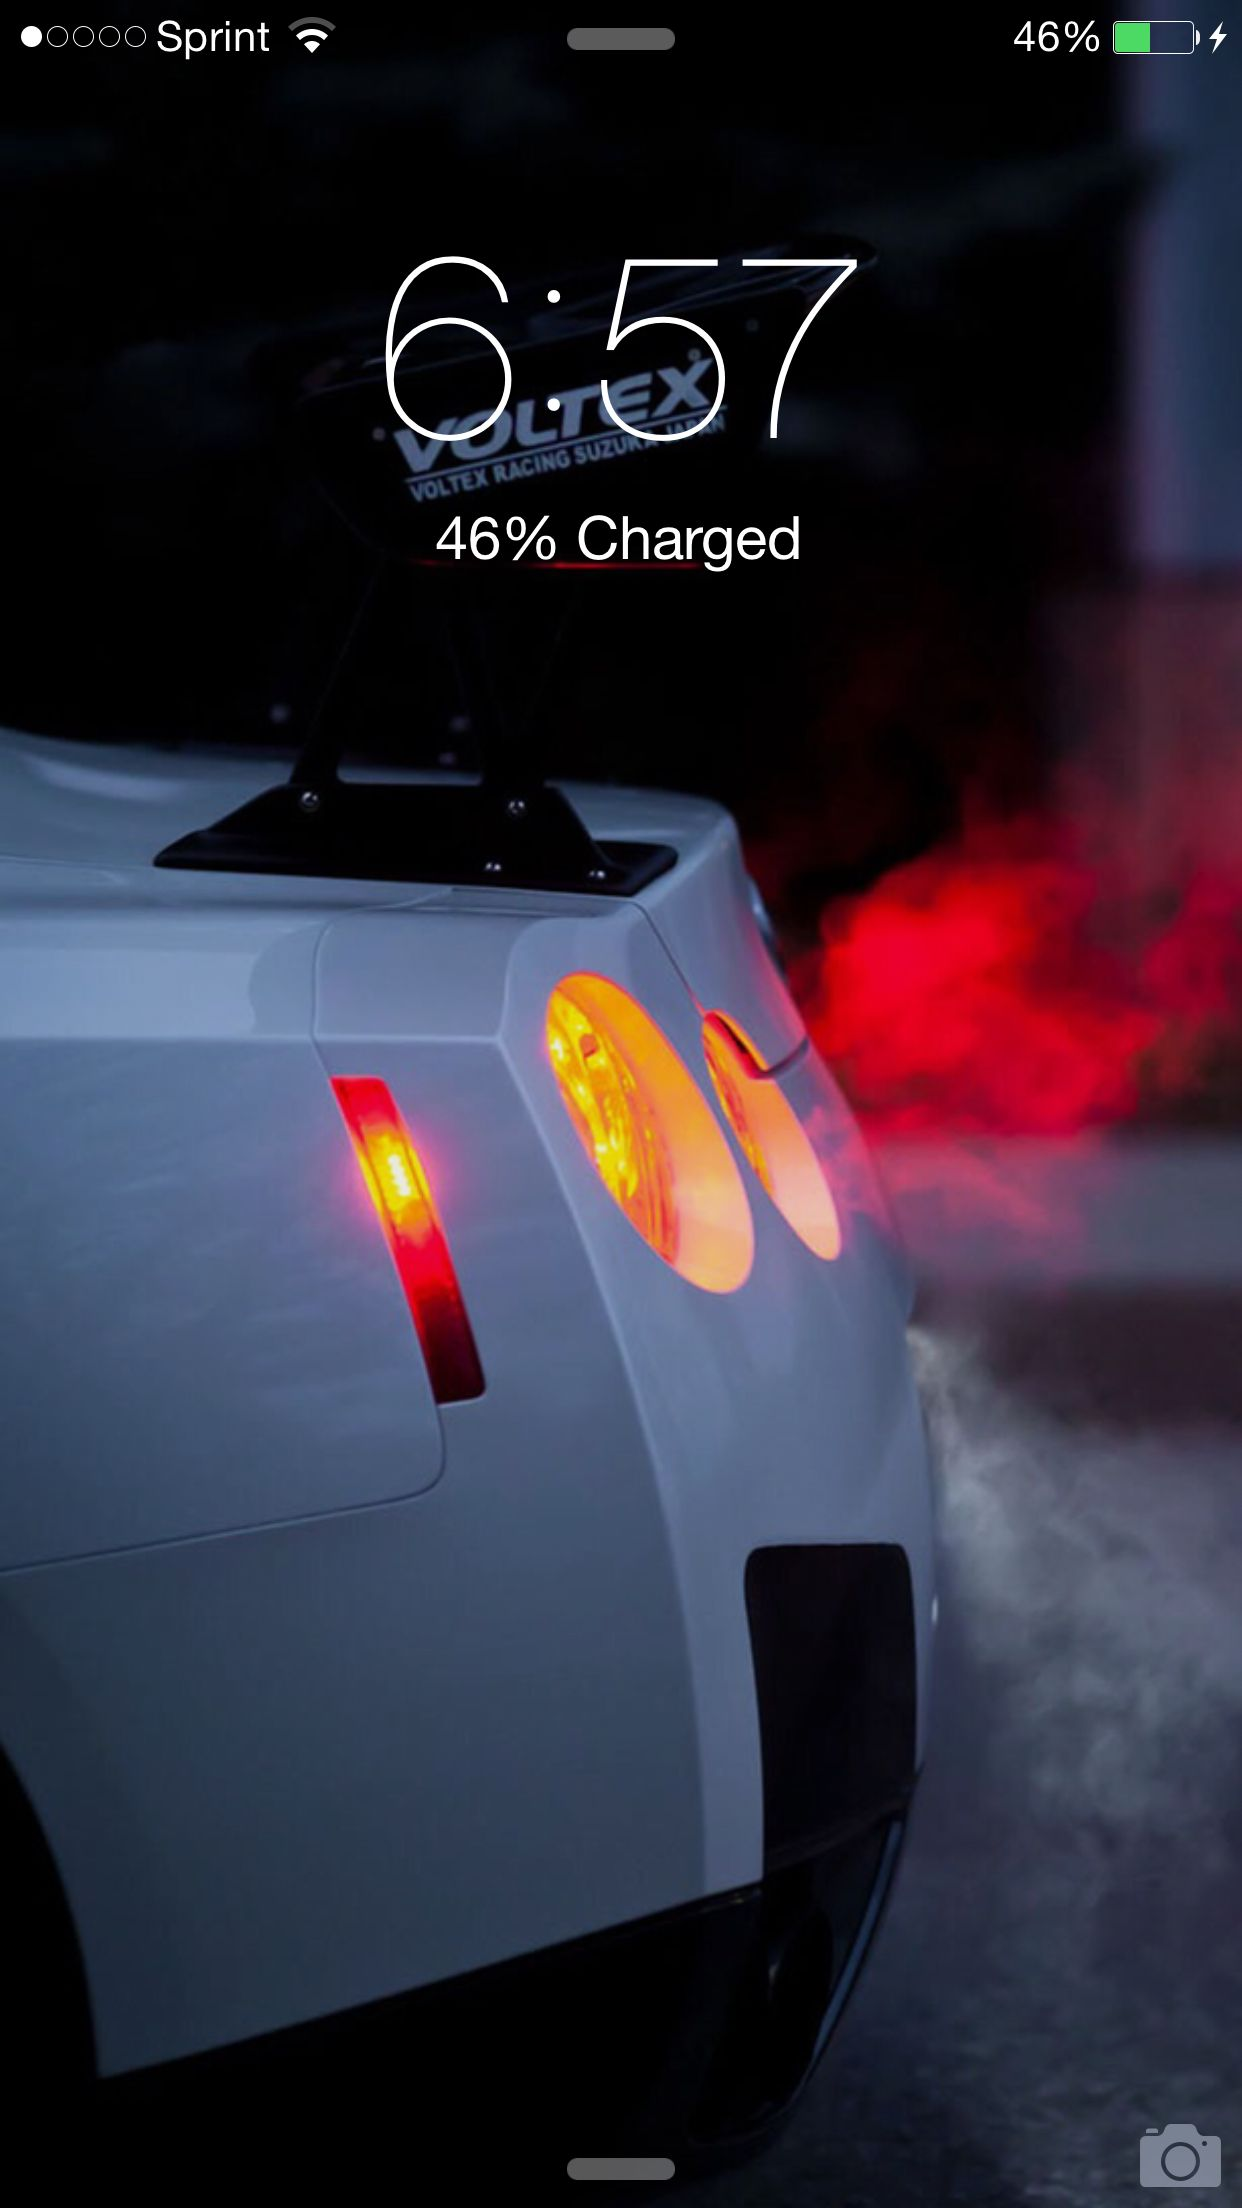 Wallpaper iphone gtr - Iphone 6 Plus Wallpaper Of The Rear End Of A Beautiful Pearl White Nissan Gt R